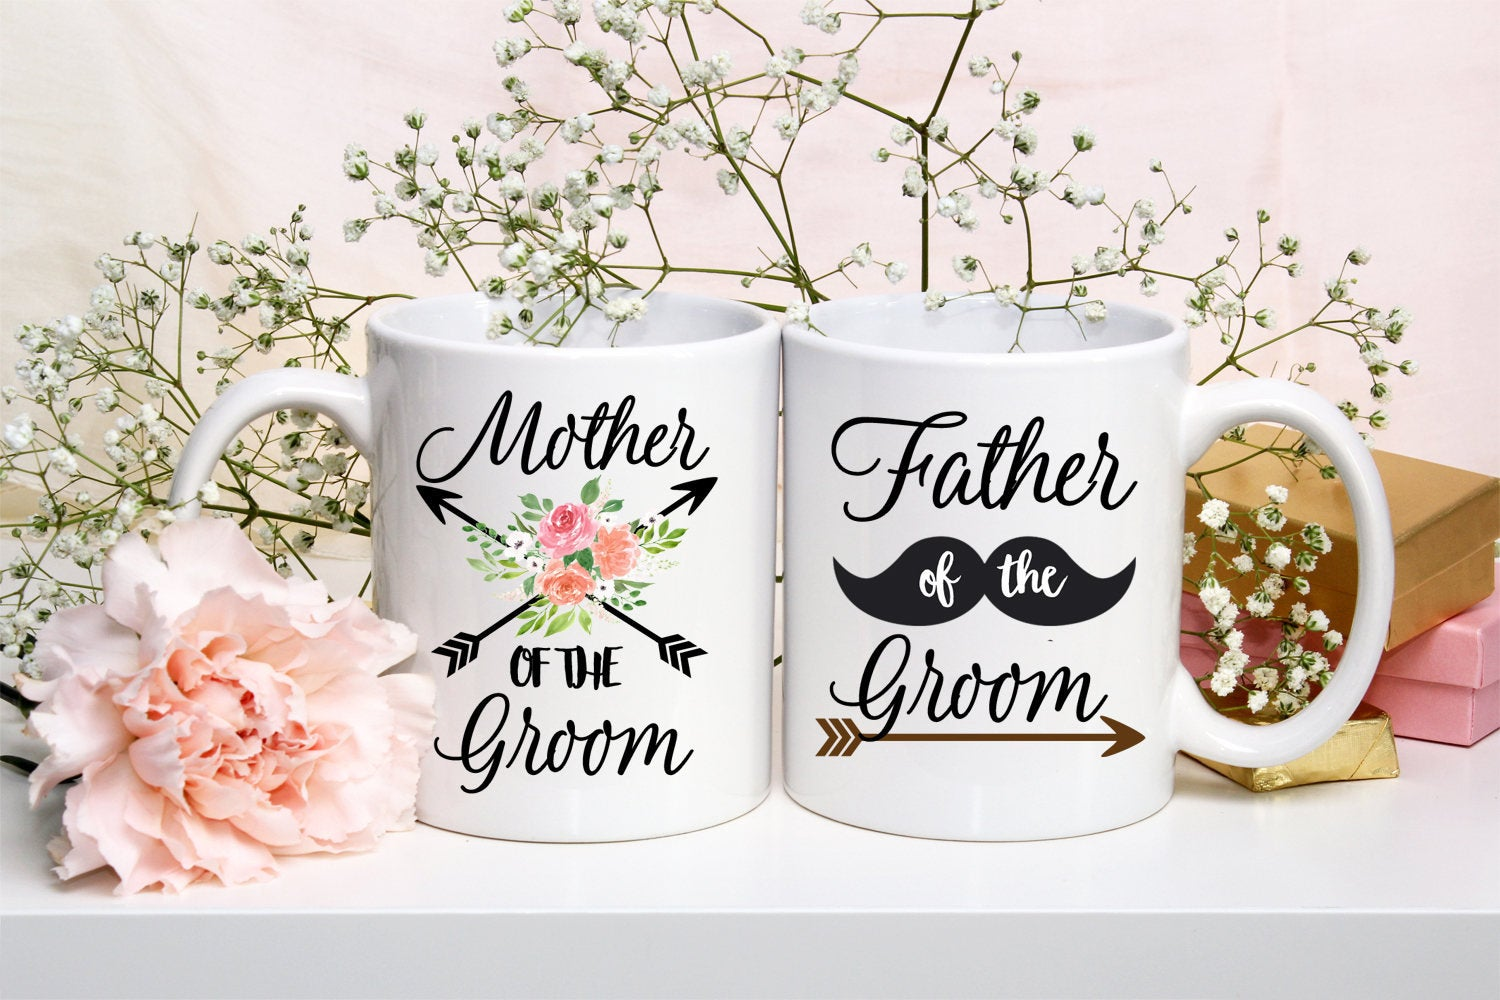 Mugs With Sayings - Ceramic Mug - Coffee Cup - Gift For Her - Gift For Him - Wedding Gift - In Law Gifts - Groom Gifts